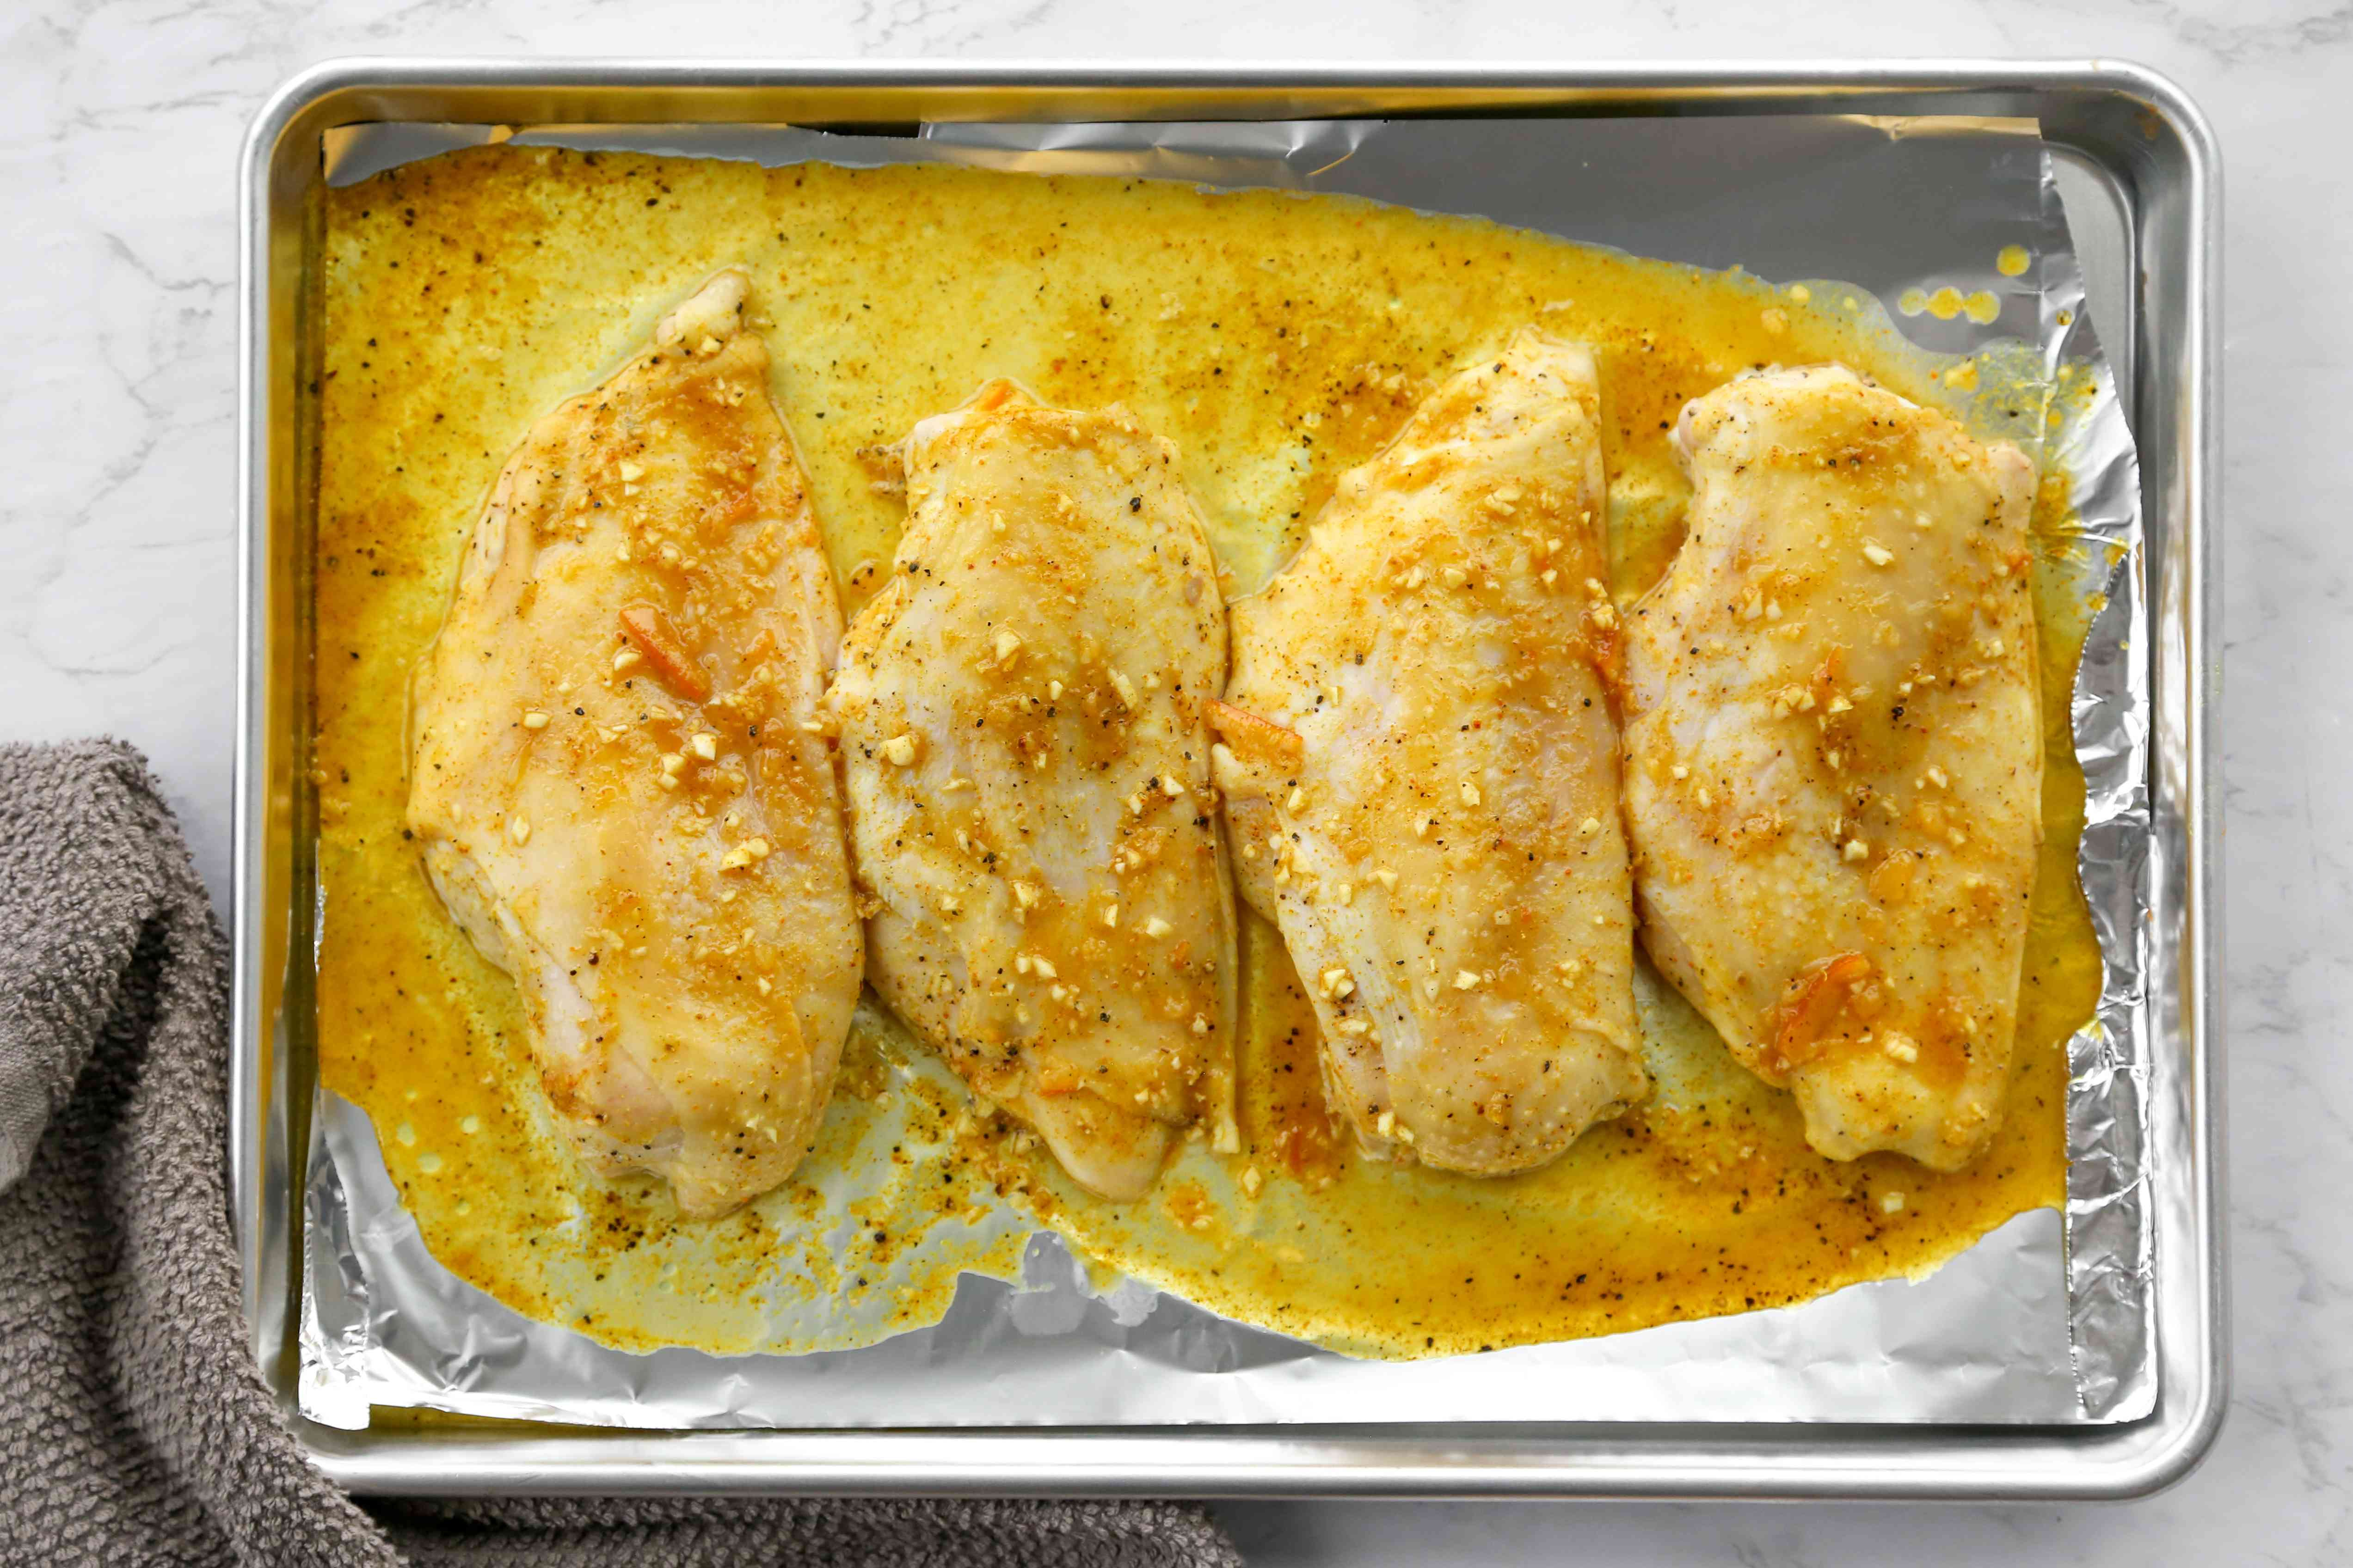 baked chicken on a baking sheet